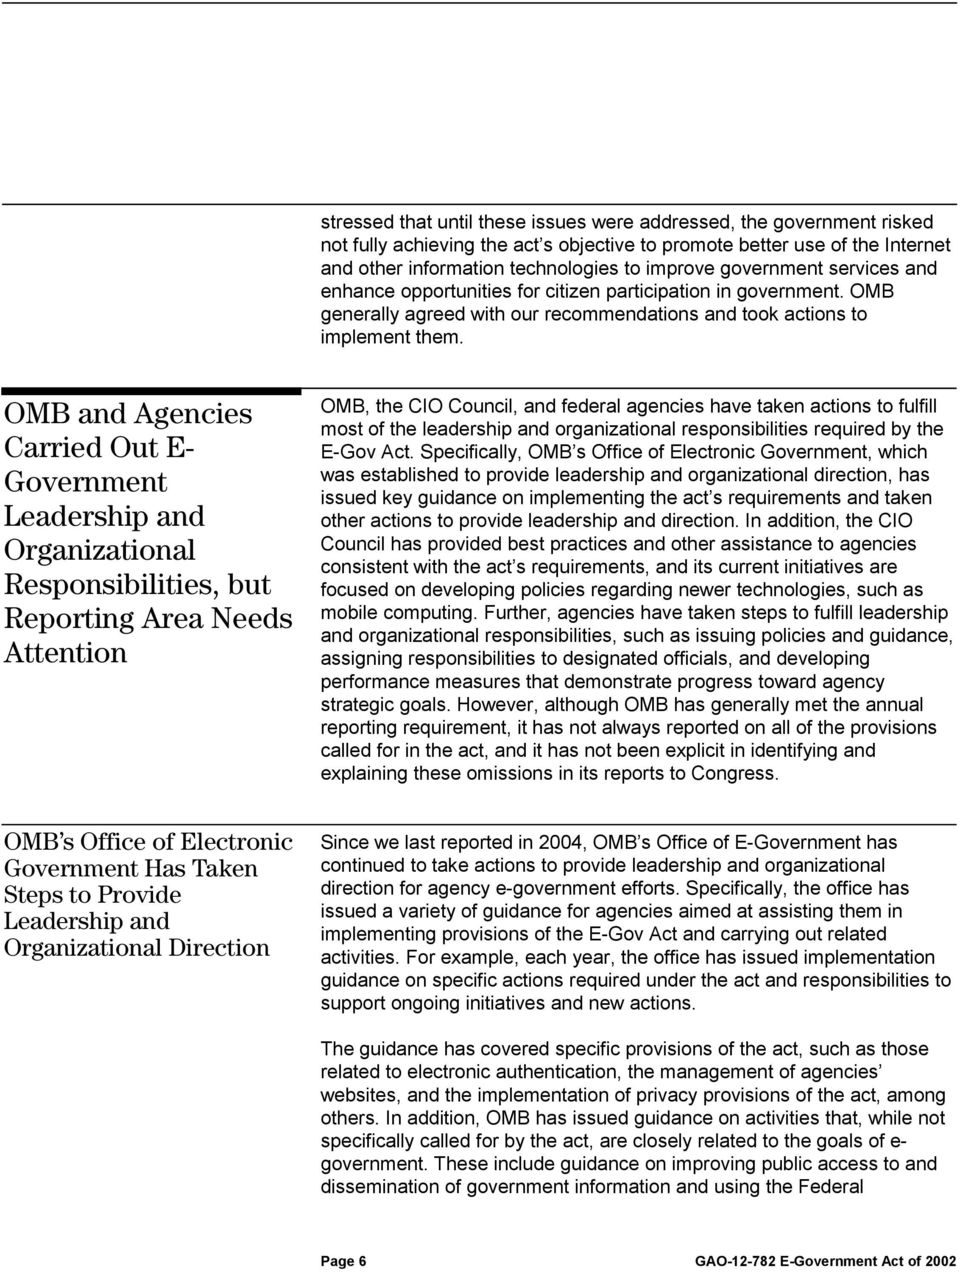 OMB and Agencies Carried Out E- Government Leadership and Organizational Responsibilities, but Reporting Area Needs Attention OMB, the CIO Council, and federal agencies have taken actions to fulfill